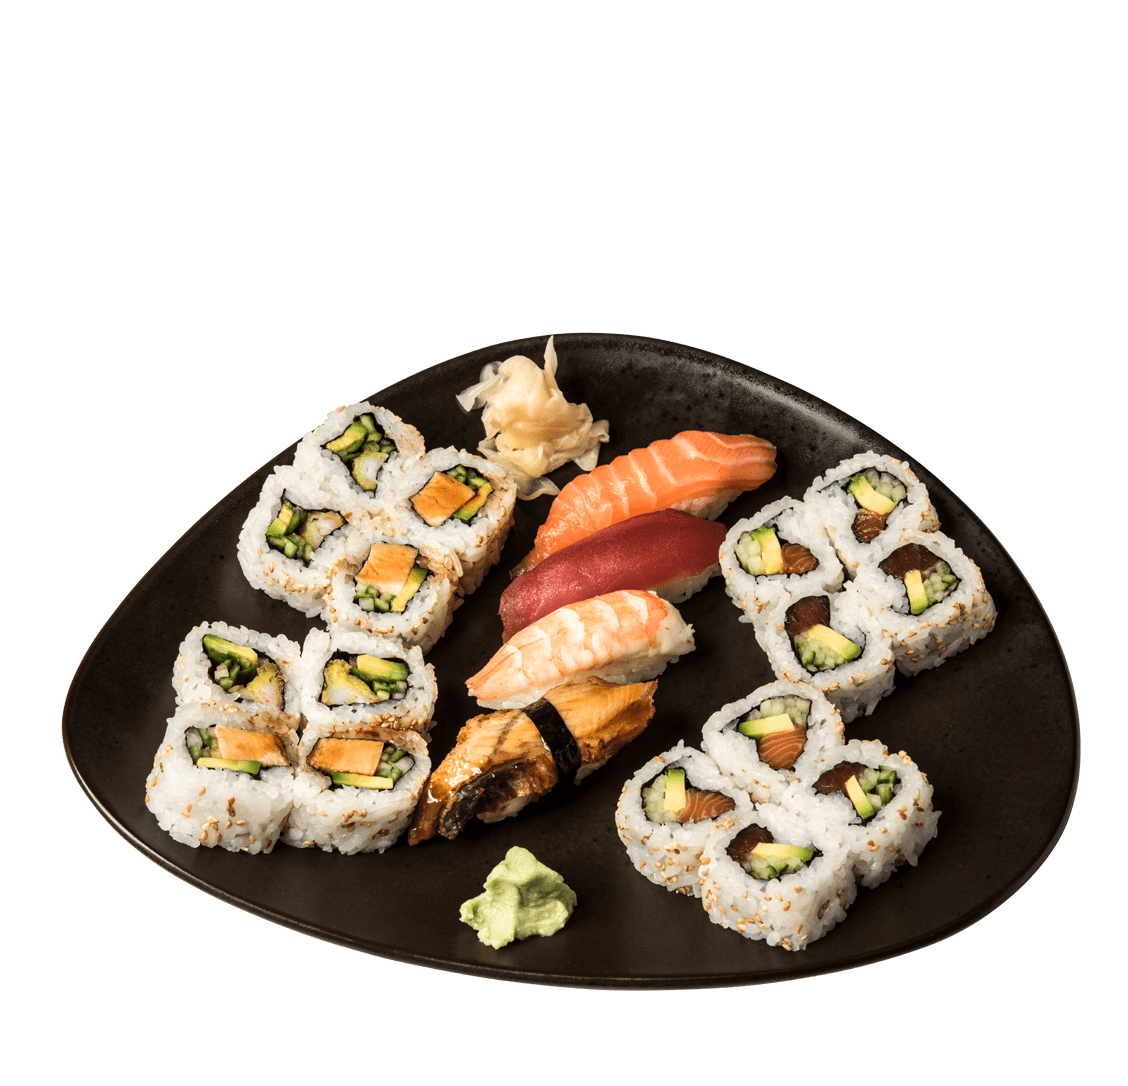 SUSHI MIX<br/>KLEIN • 1 CALIFORNIA ROLL, 2 NIGIRI 12,50€<br/>GROSS • 2 CALIFORNIA ROLLS, 4 NIGIRI 23,50€ title=SUSHI MIX<br/>KLEIN • 1 CALIFORNIA ROLL, 2 NIGIRI 12,50€<br/>GROSS • 2 CALIFORNIA ROLLS, 4 NIGIRI 23,50€